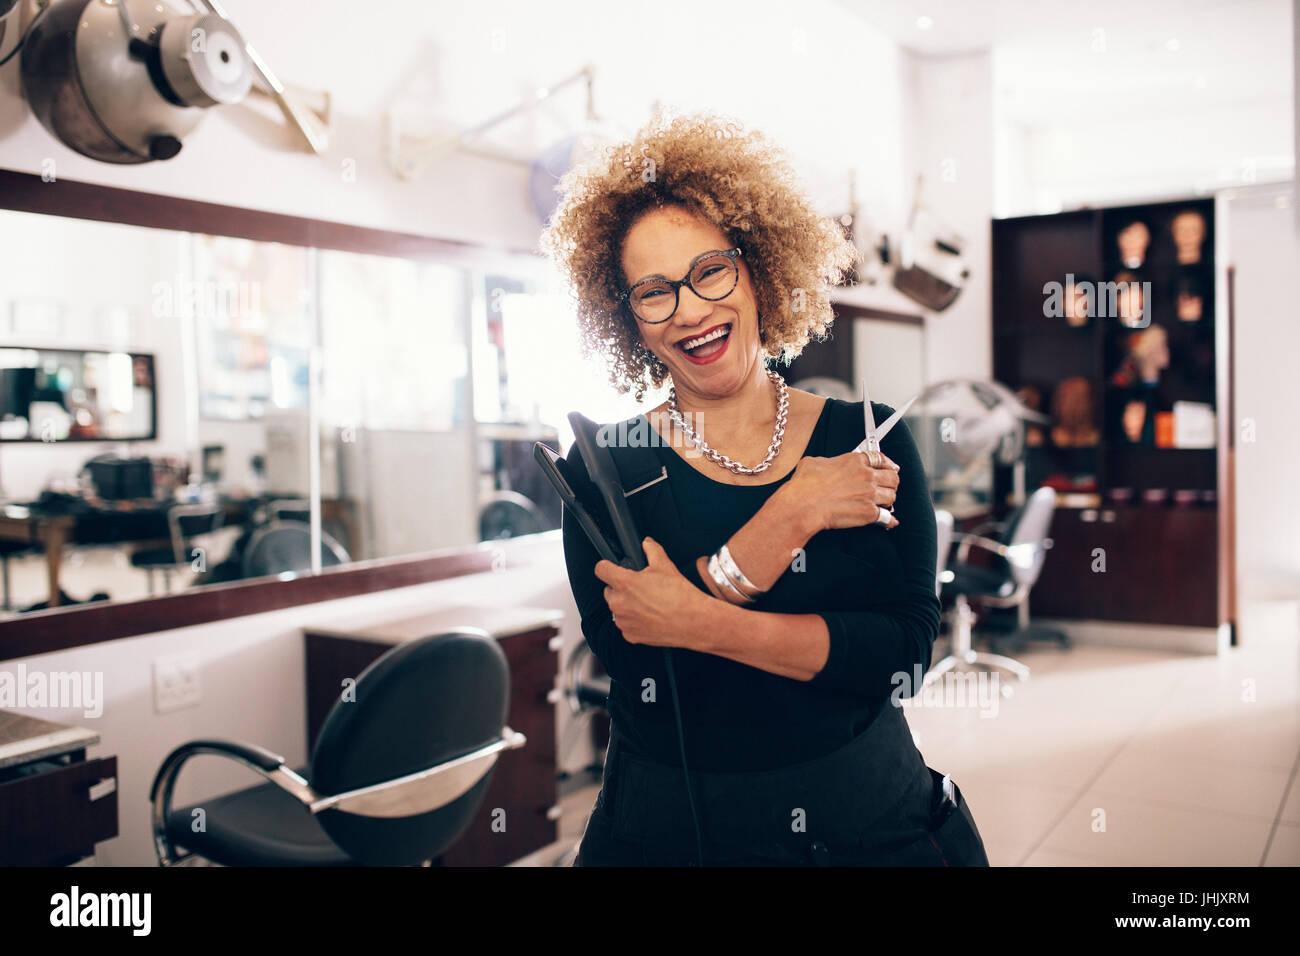 Smiling female hairdresser holding a hair straightener and scissors. Well equipped beauty salon with professional - Stock Image